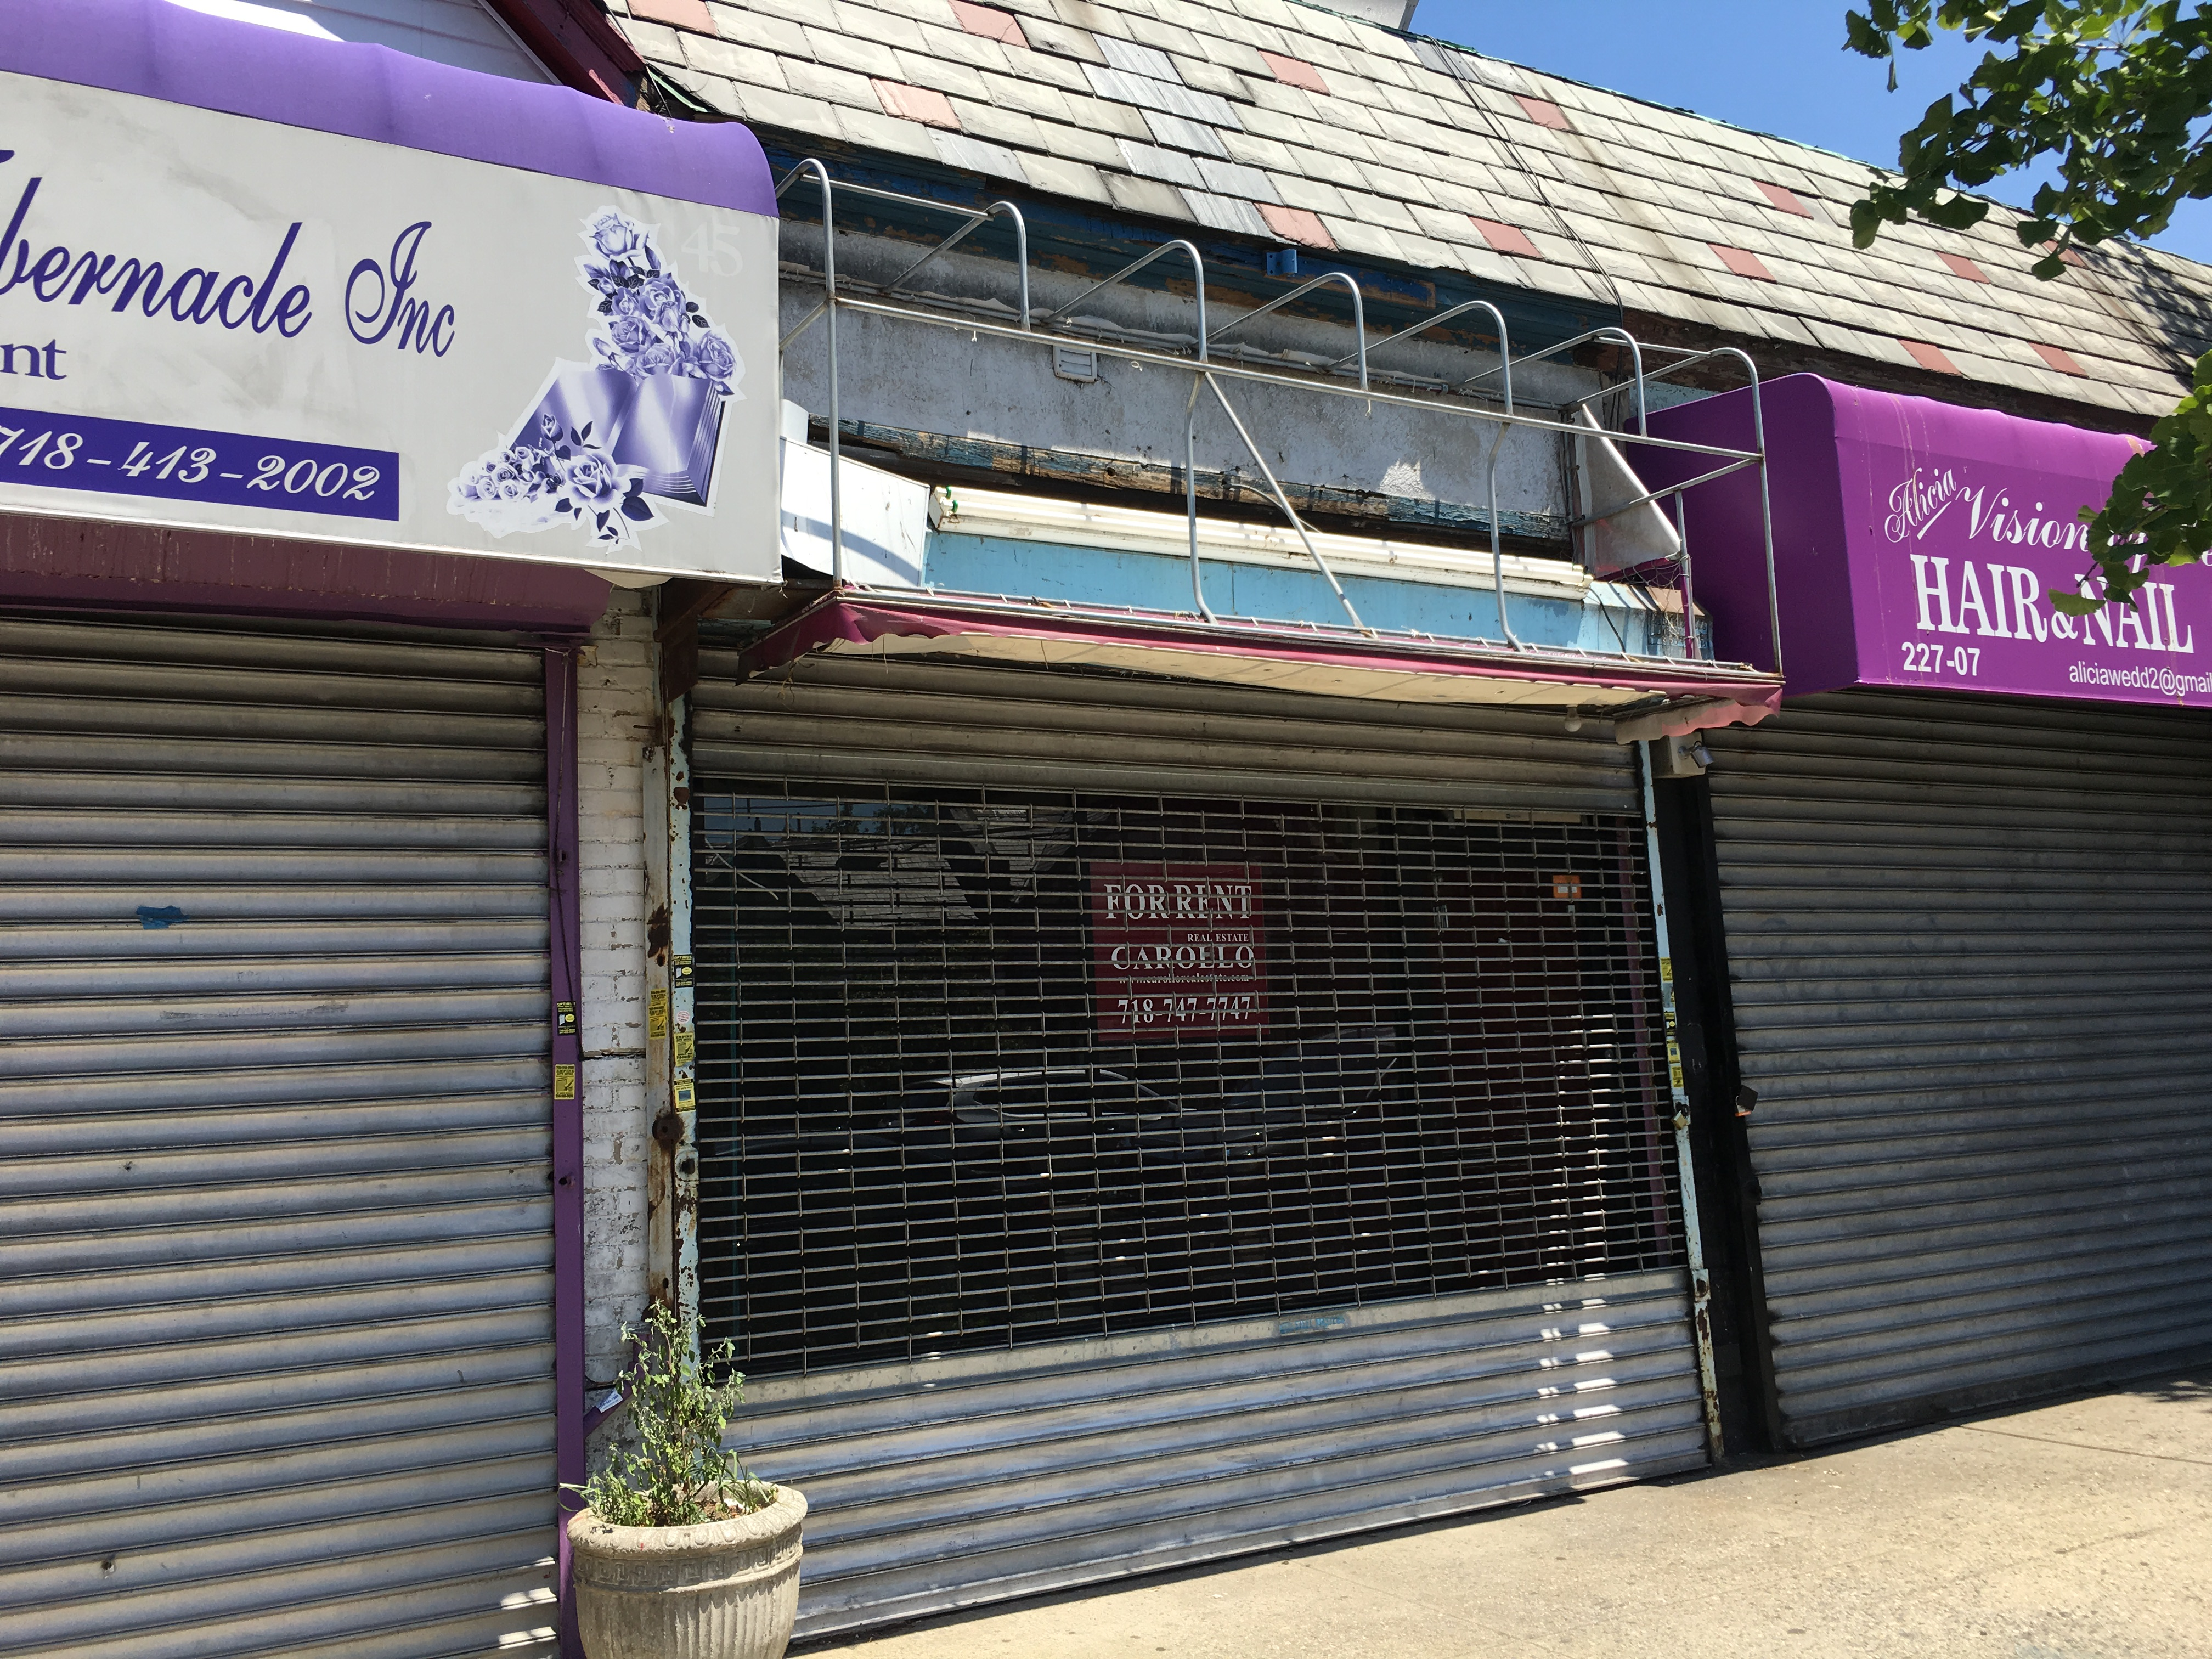 ID#: 1298642 Commercial Property Available For Rent In Cambria Heights. 900 Interior Sq Ft. With 1 Full Bathroom And Full Finished Basement.Great Location Close To Transportation! Heavy Foot Traffic. Great Opportunity. Other Stores Also Available. Why Go Anywhere Else?